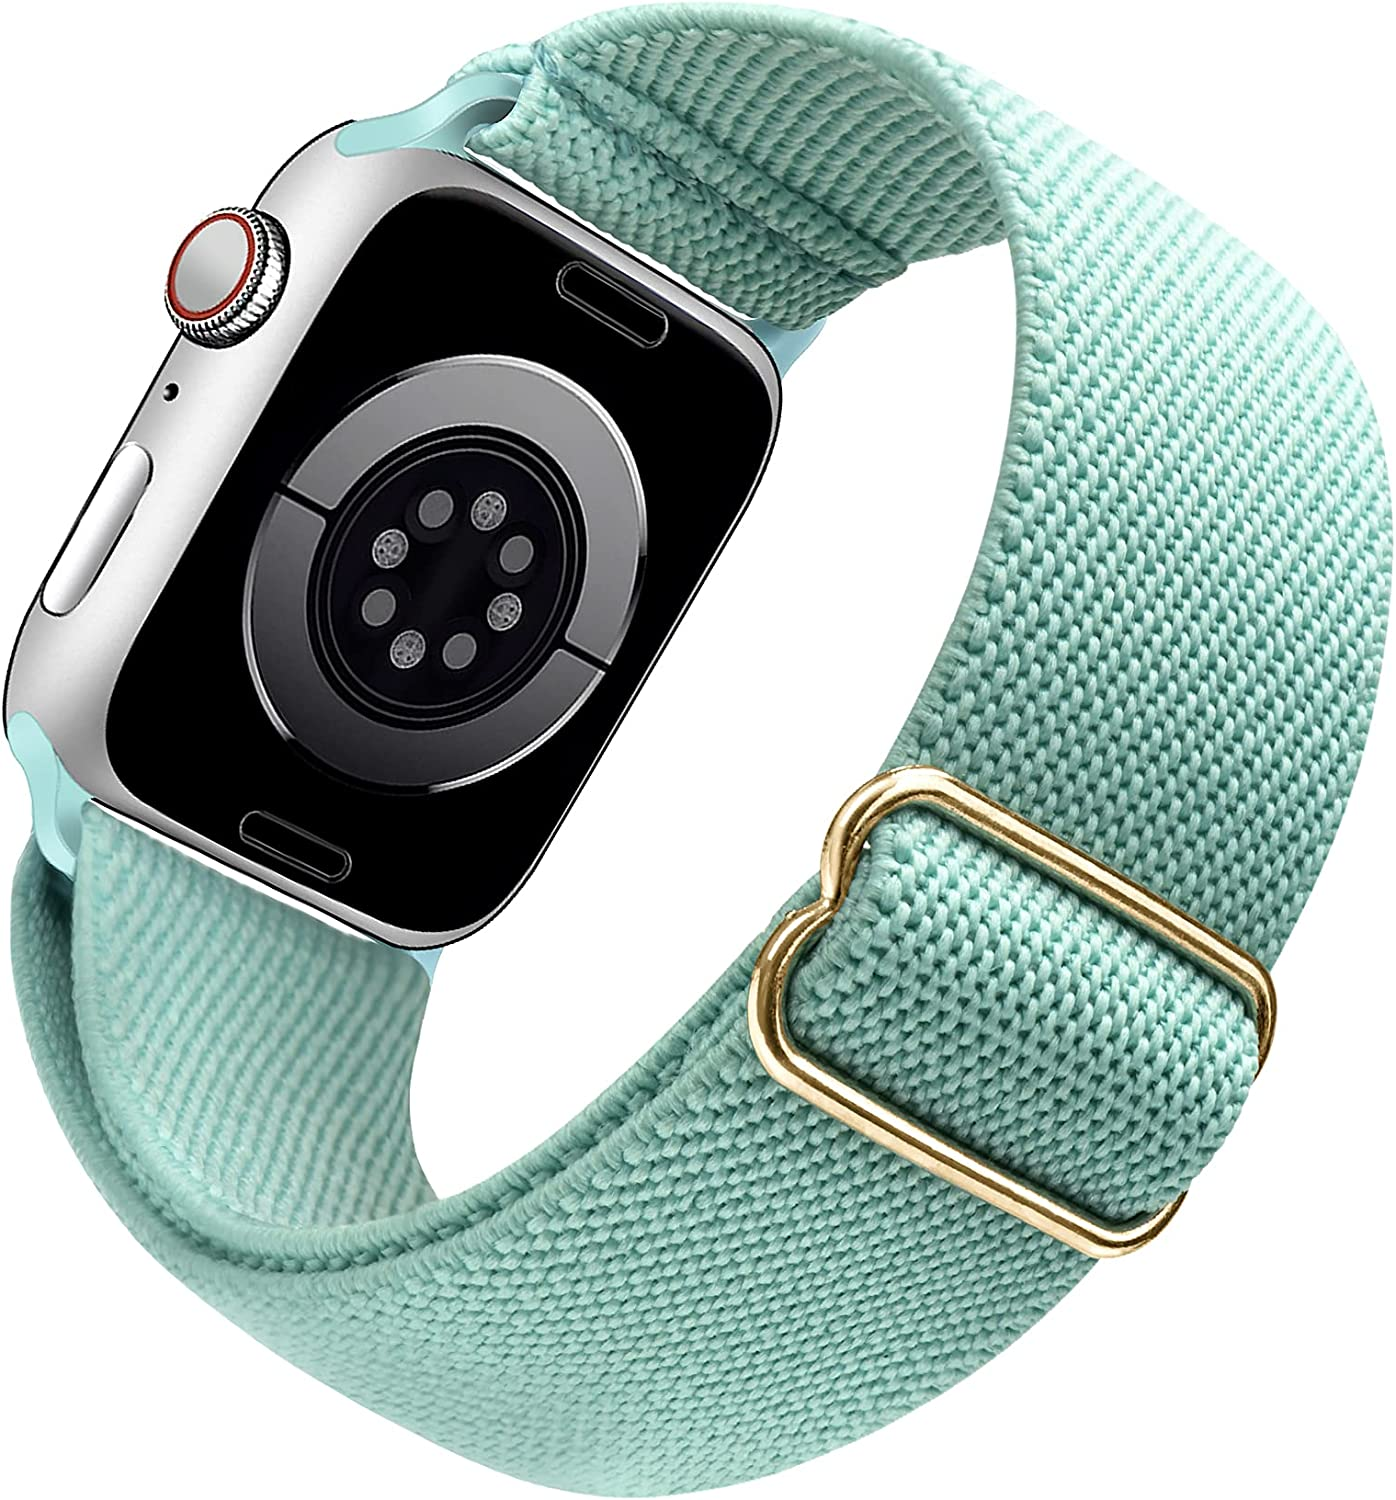 Arae Stretchy Nylon Watch Band Compatible with Apple Watch Band 40mm 38mm Adjustable Elastic Sport Band for iWatch Series 6 5 4 SE 3 2 1 Women Men - Green, 38/40mm